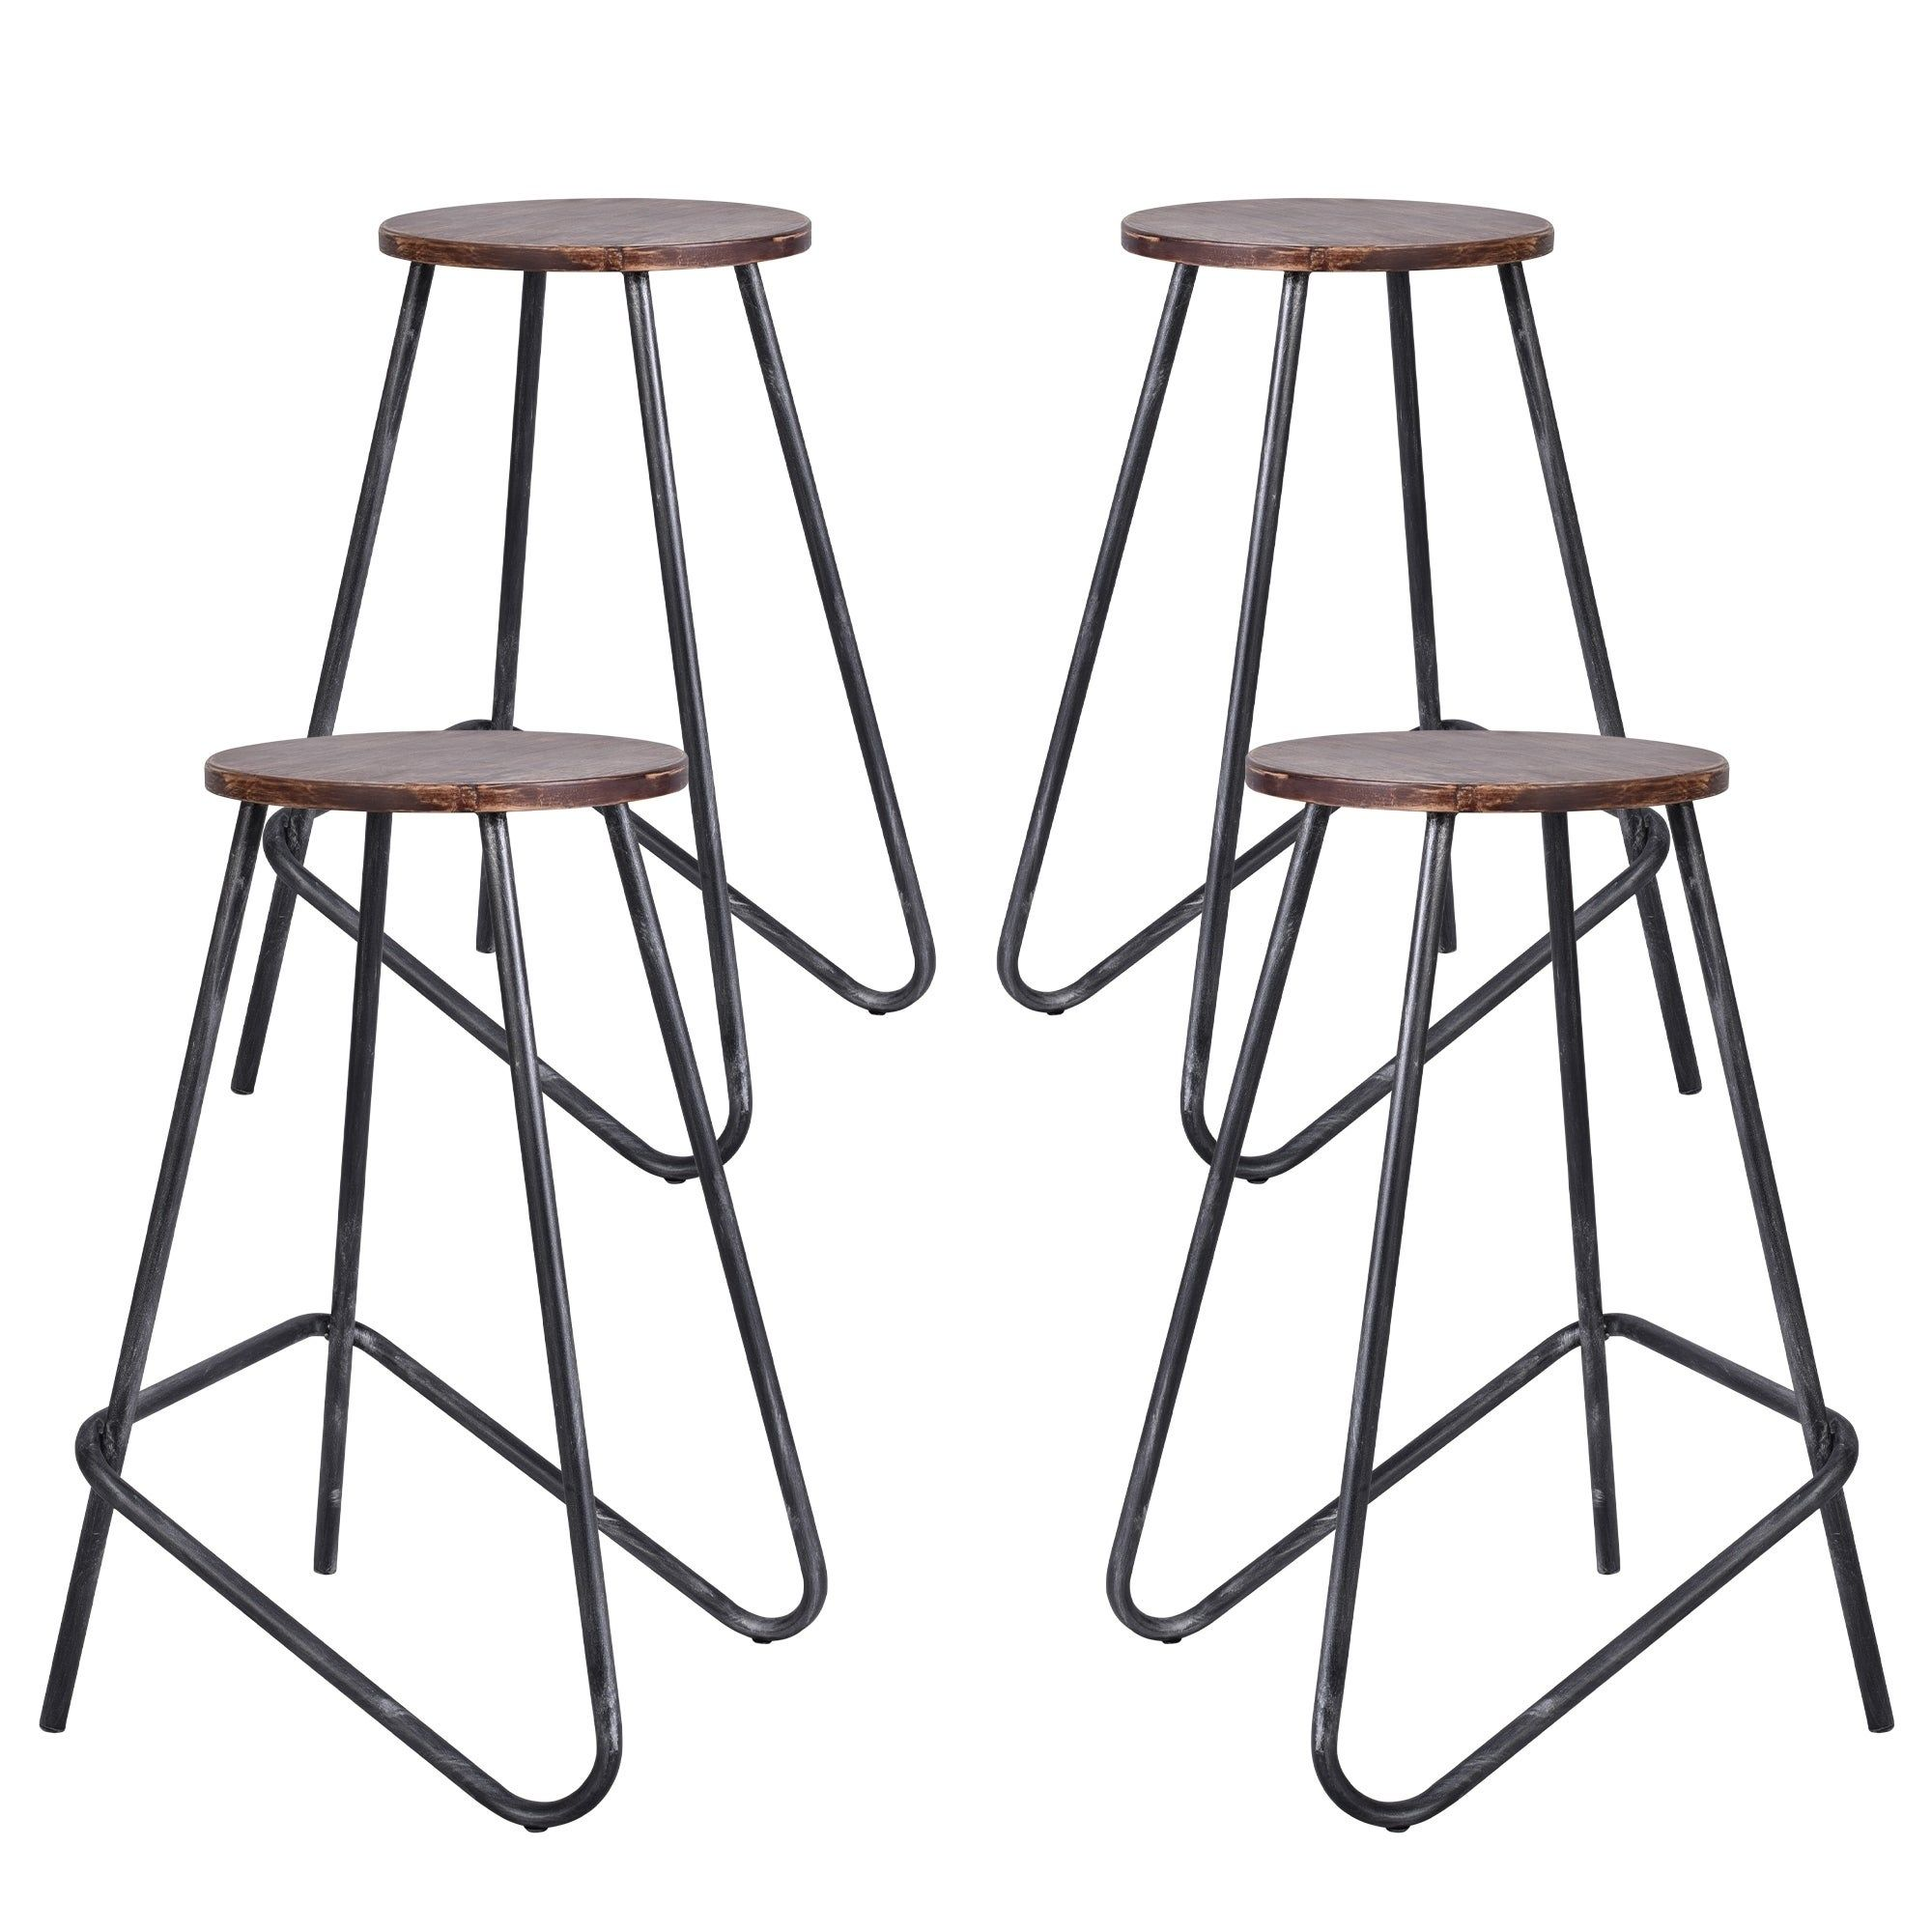 Elise Industrial Backless Metal Barstool In Silver Brushed Gray